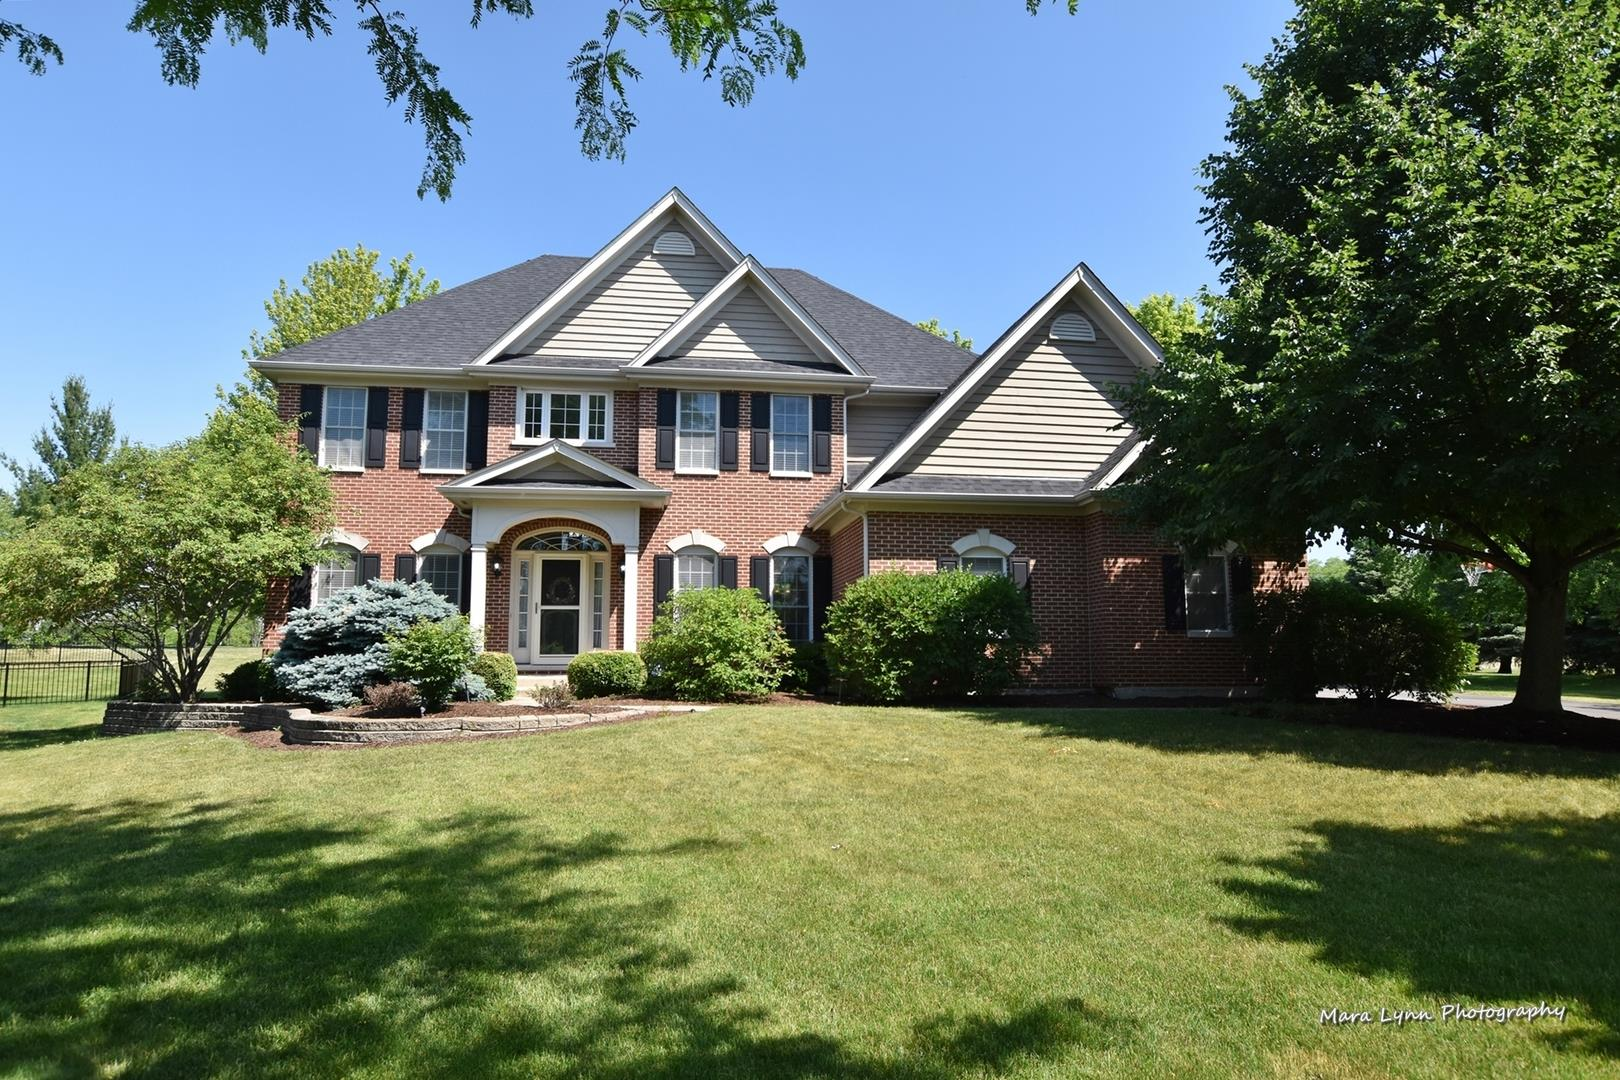 4N444 Robert Penn Warren Cove, Saint Charles, IL 60175 - #: 10753614